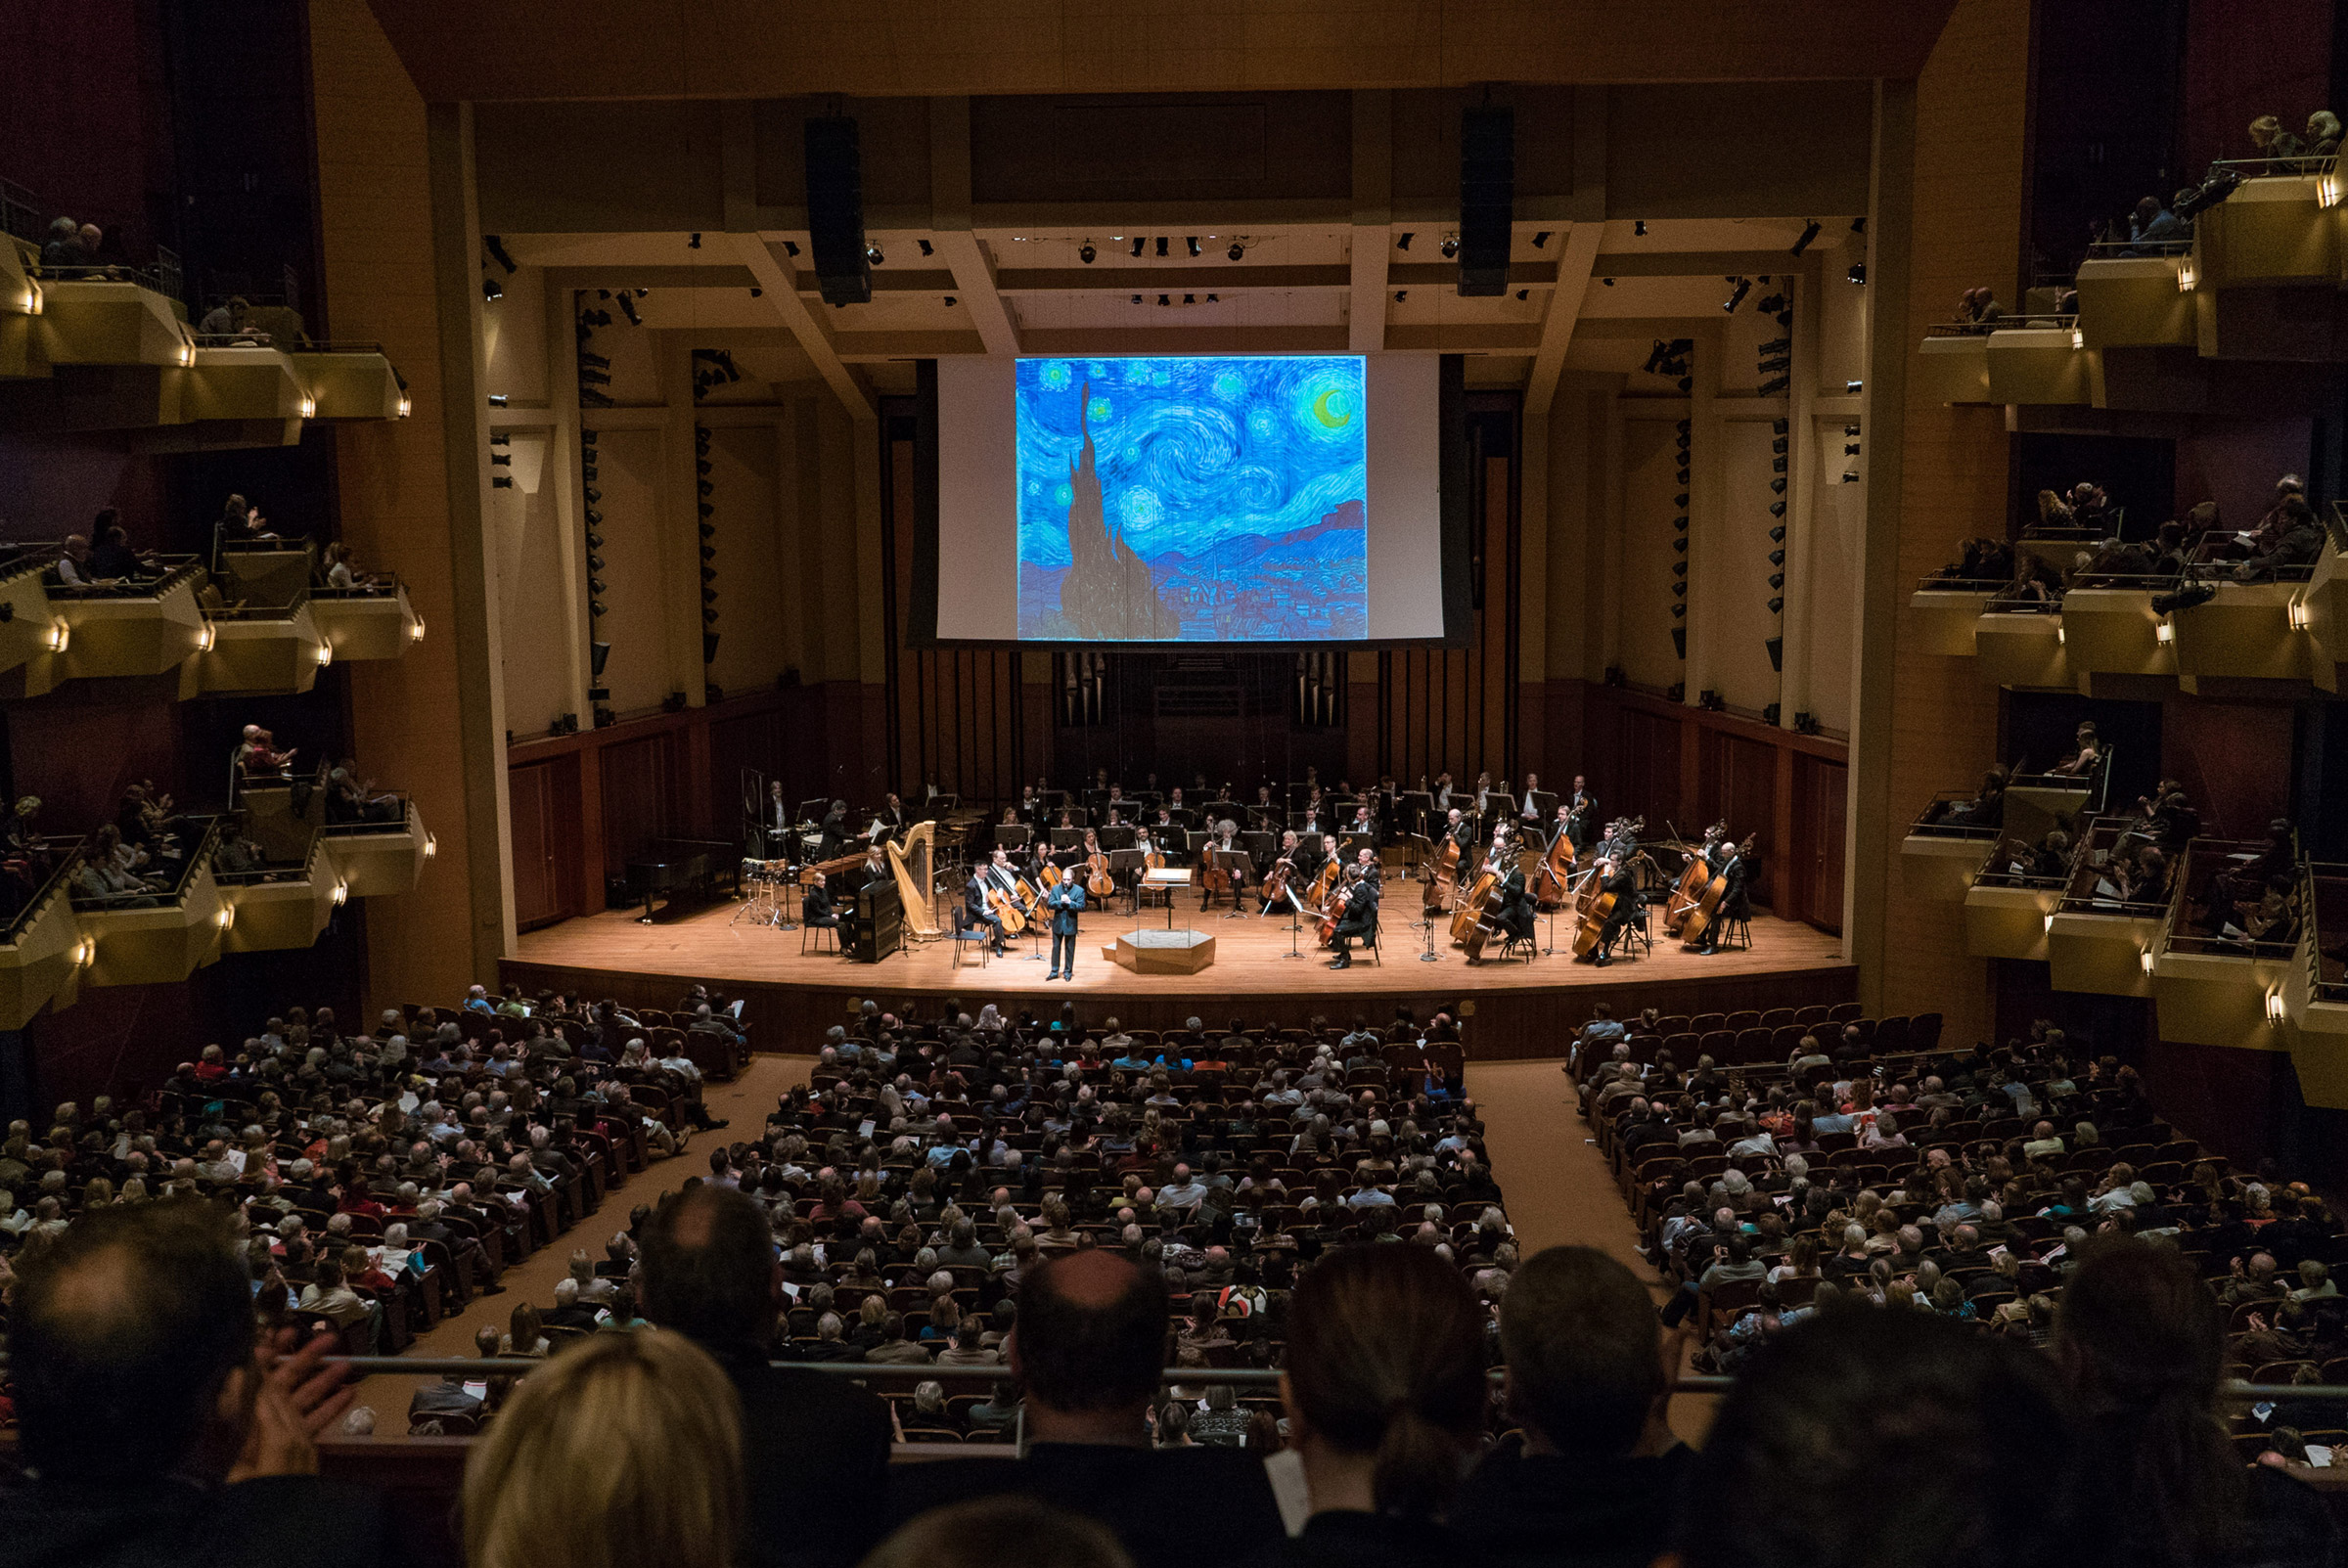 seattle-symphony-orchestra-brandon-patoc-colorful-lighting-starry-night.JPG